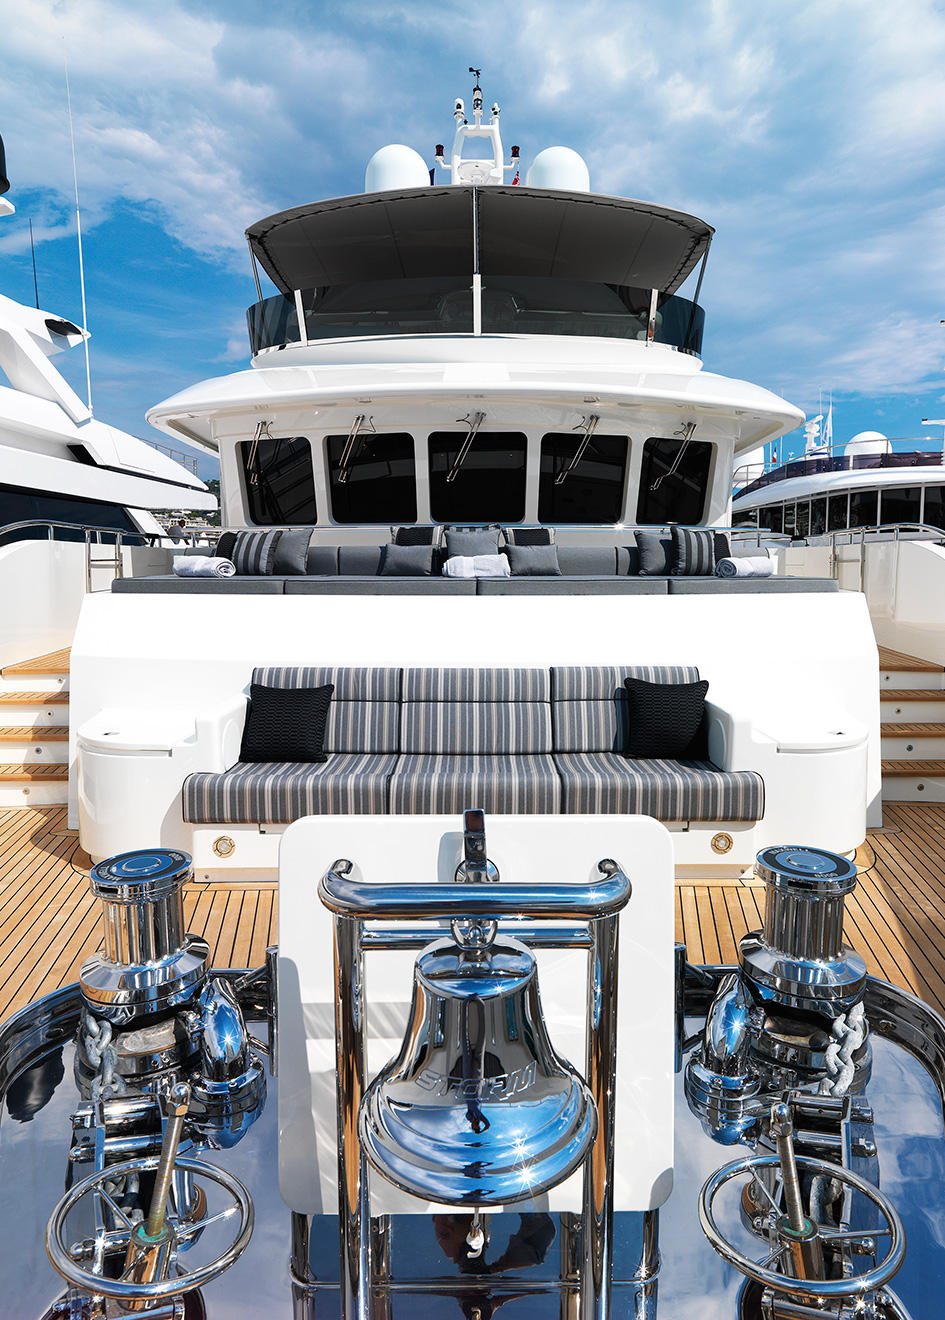 cantiere-delle-march-darwin-107-super-yacht-storm-features-rugged-explorer-yacht-looks